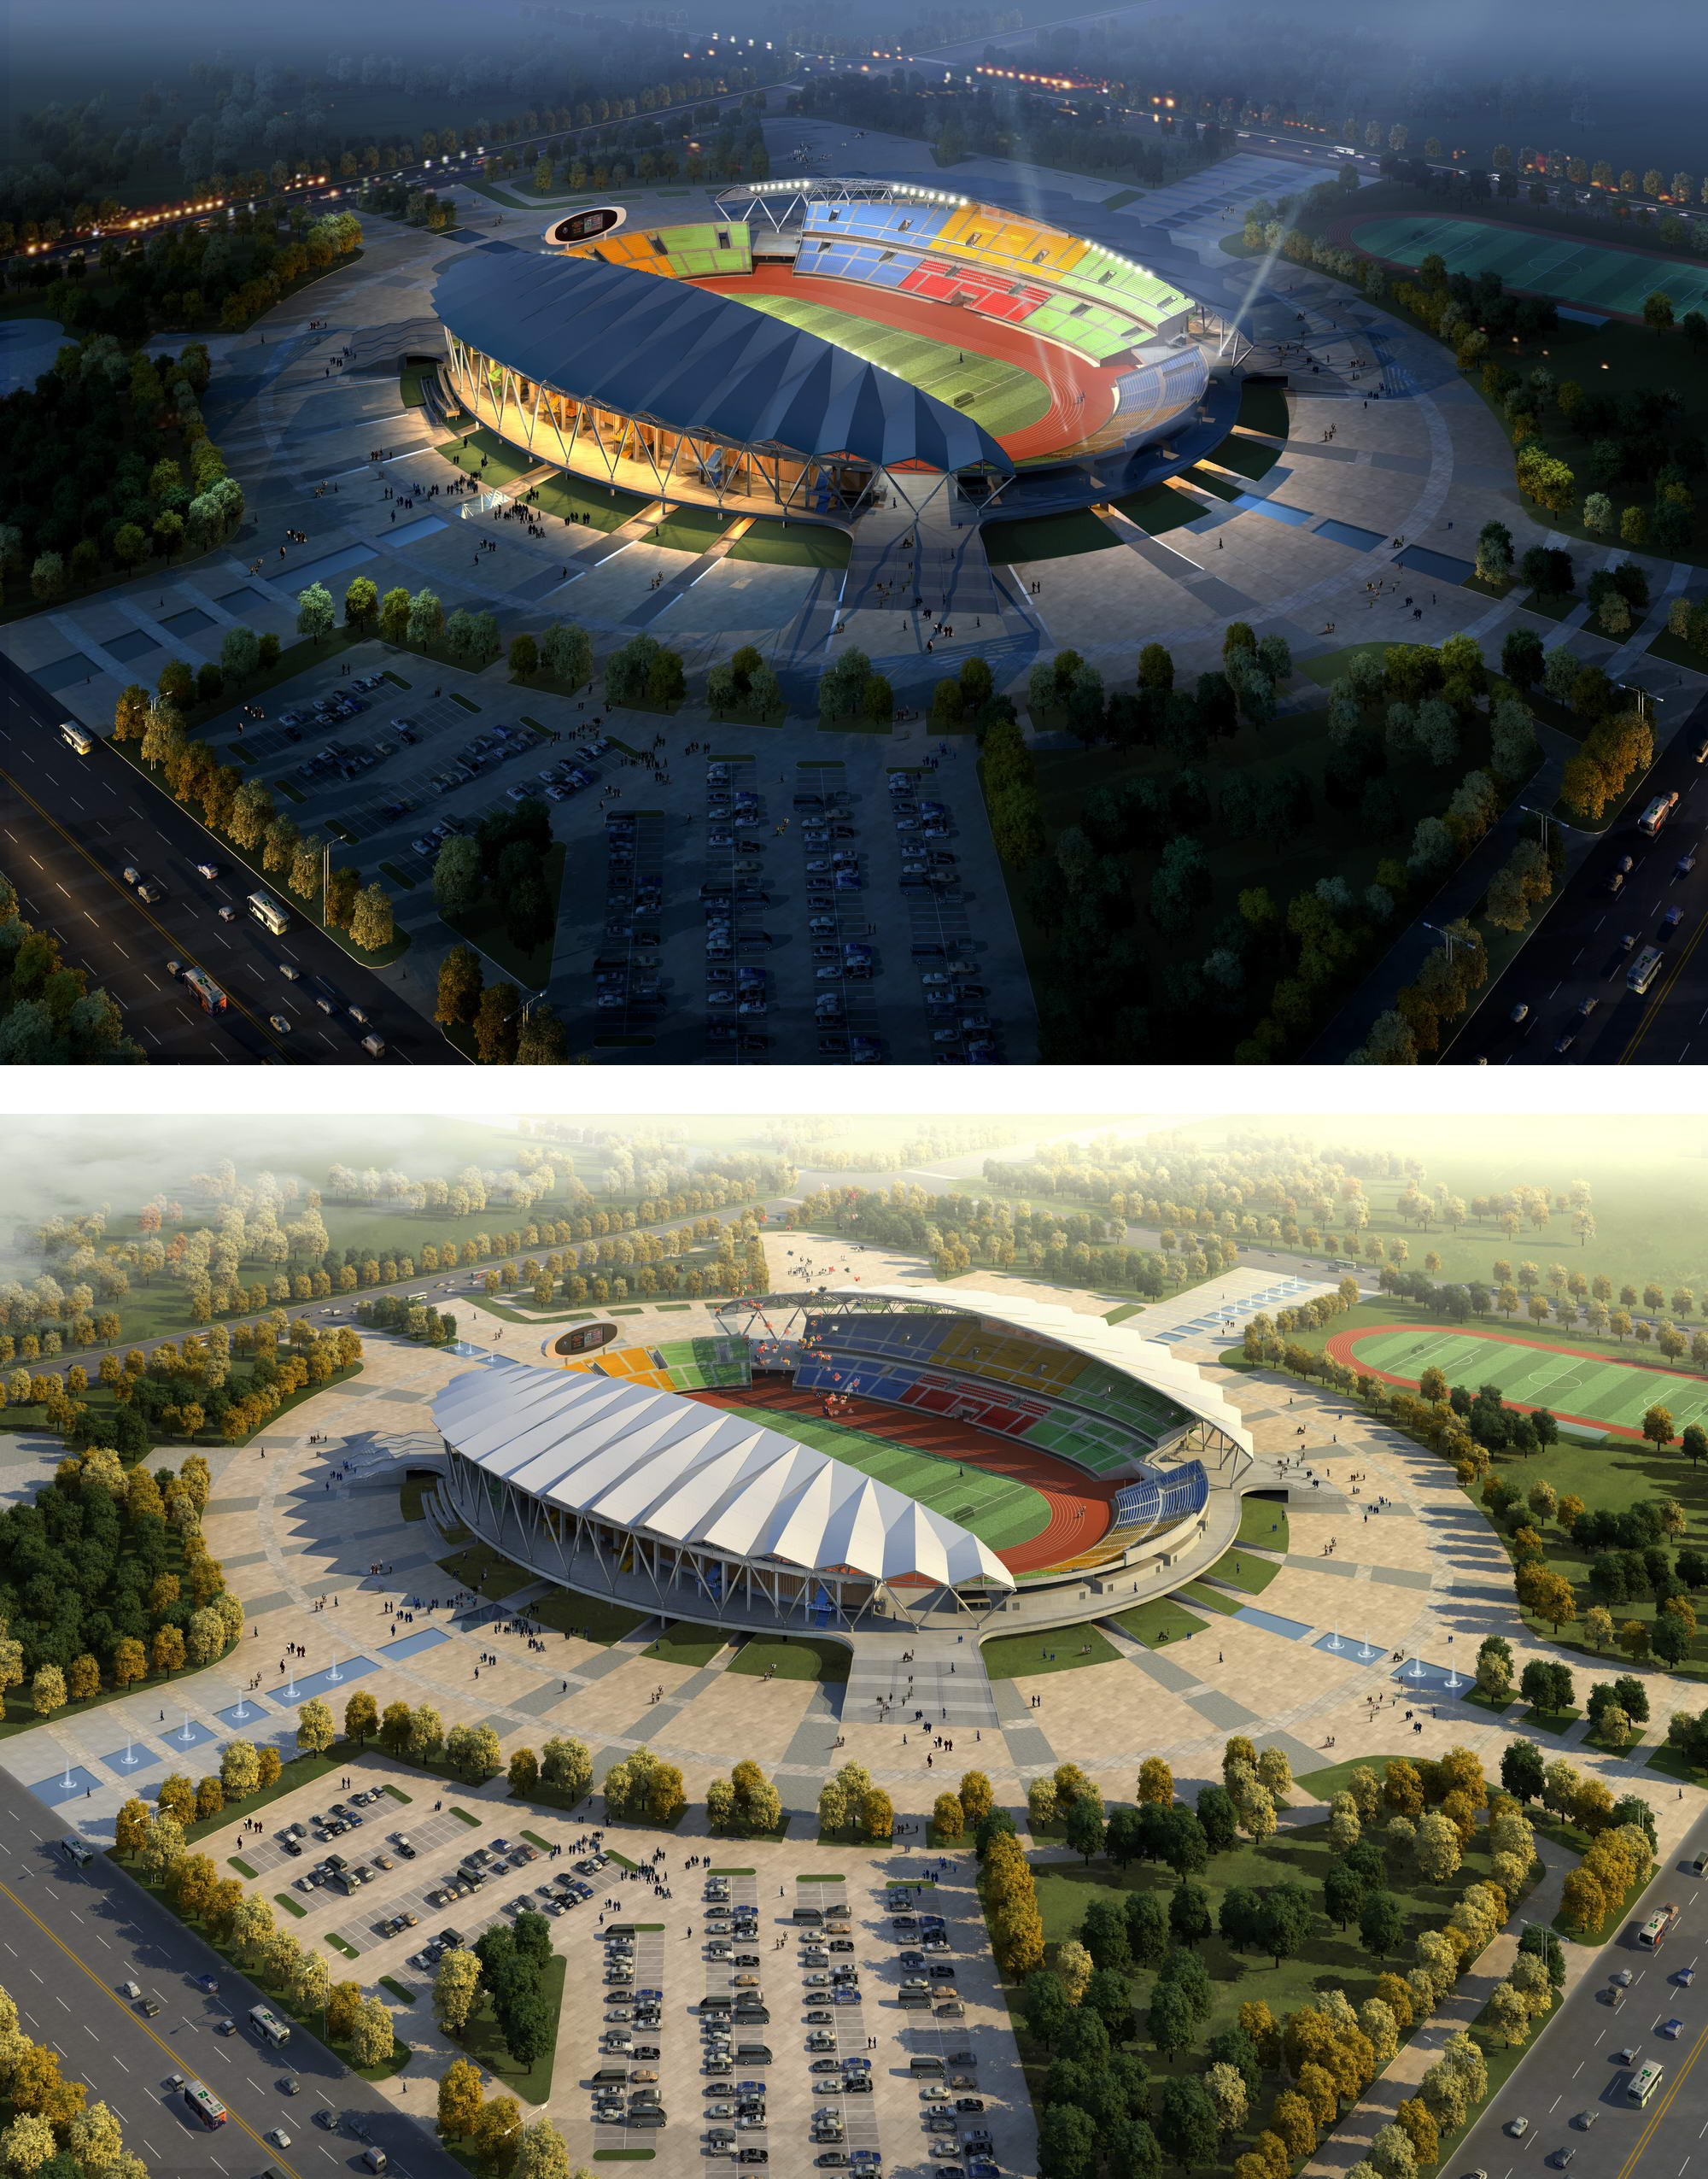 grand stadion 001 3d model 3ds max psd obj 98287